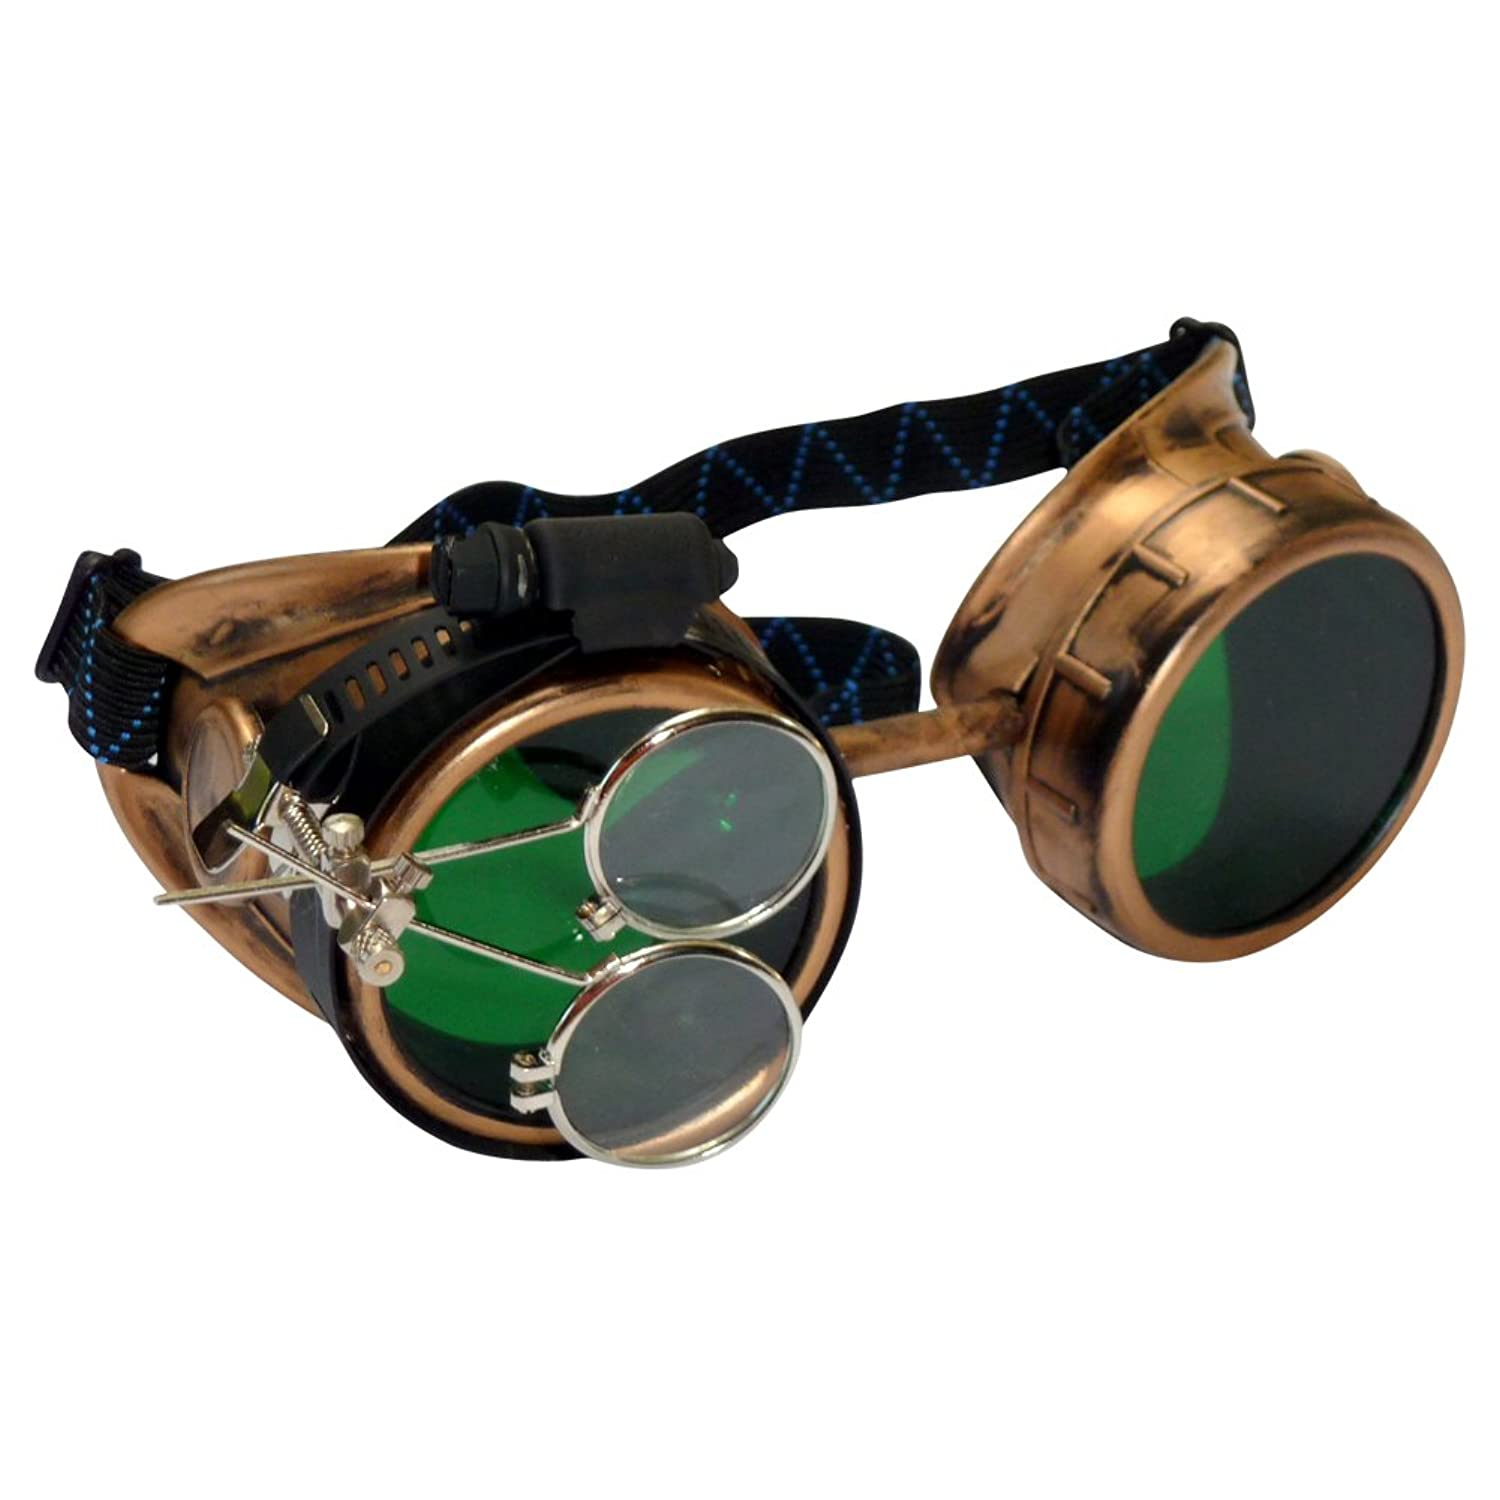 Men's Steampunk Costume Essentials Steampunk Victorian Goggles Glasses gold green magnifying lens $24.99 AT vintagedancer.com